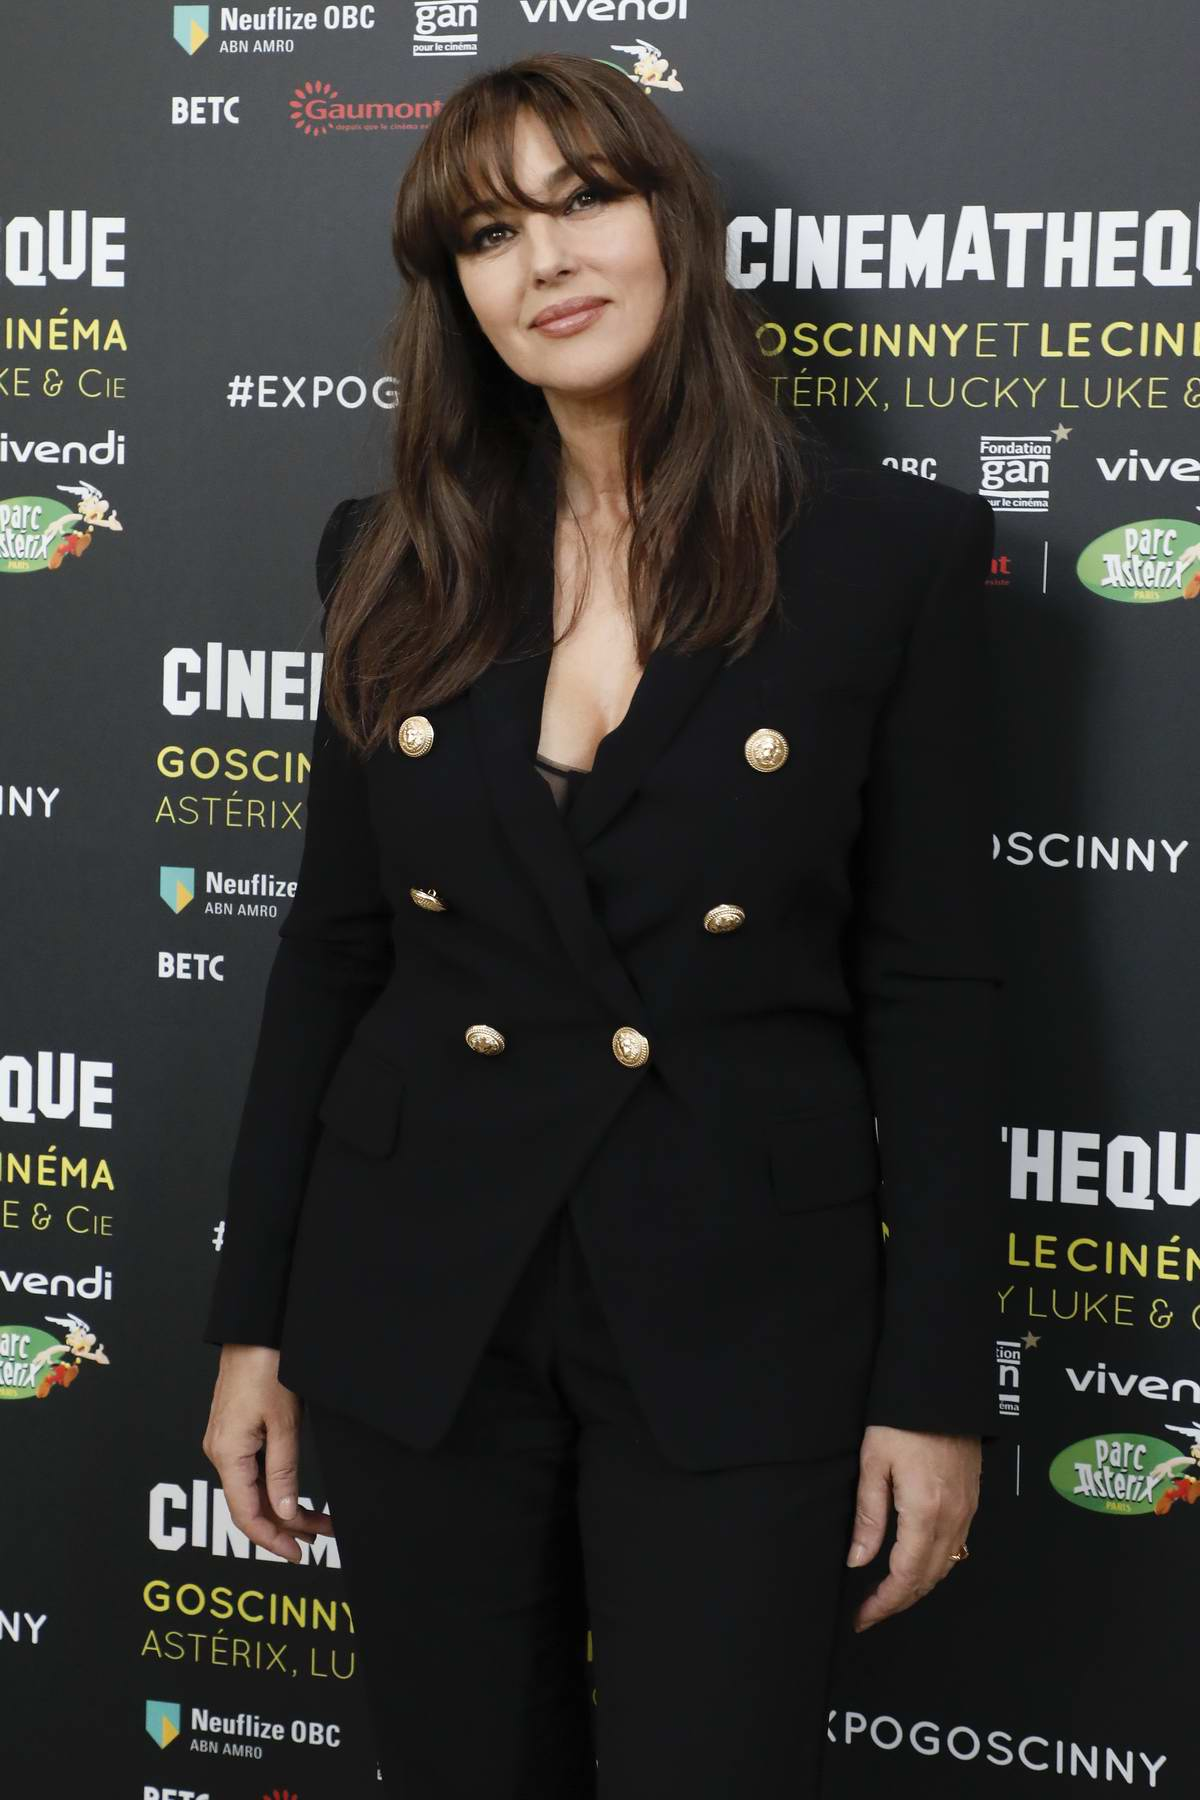 Monica Bellucci at La Cinématheque of Paris, France